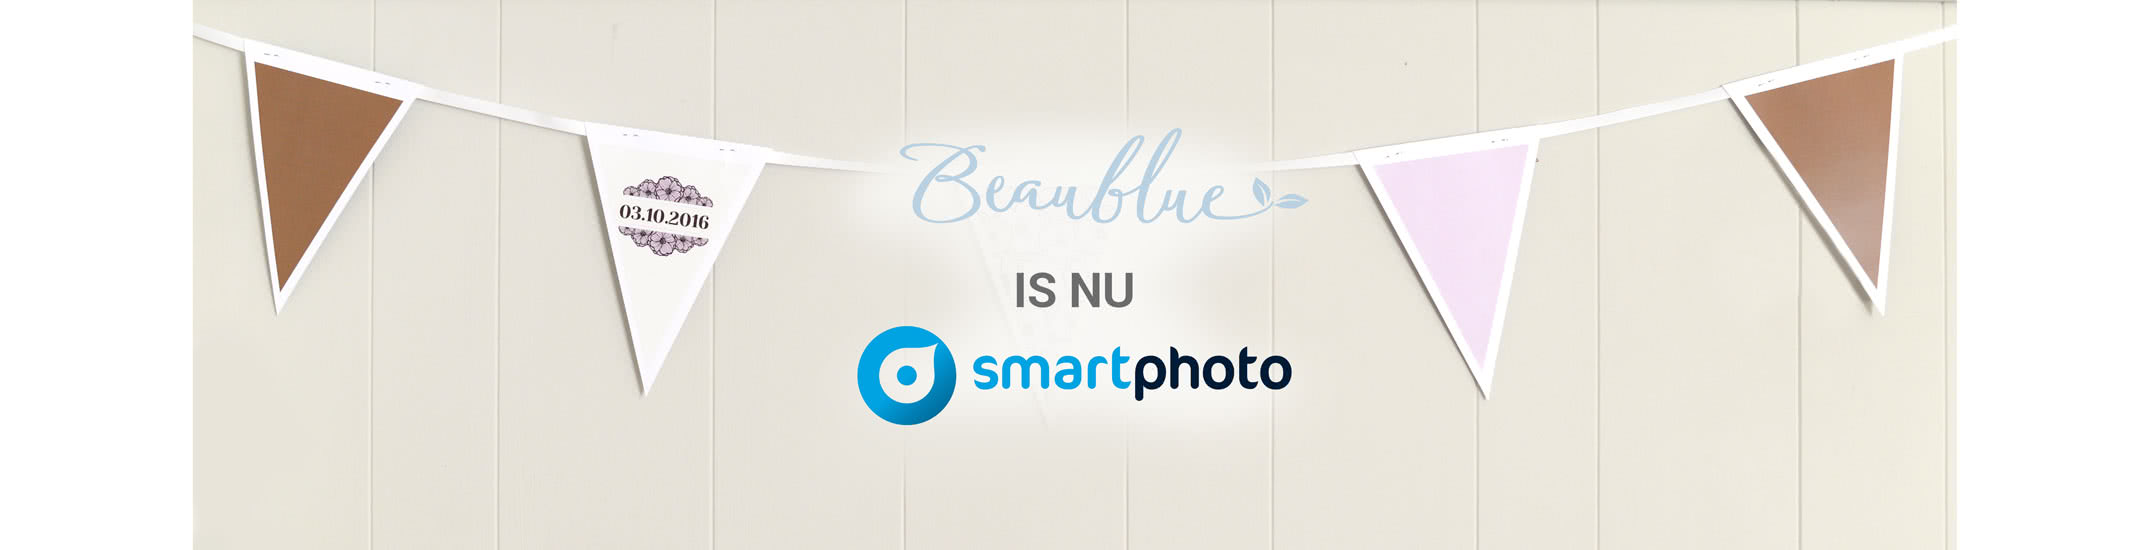 Beaublue is nu smartphoto!